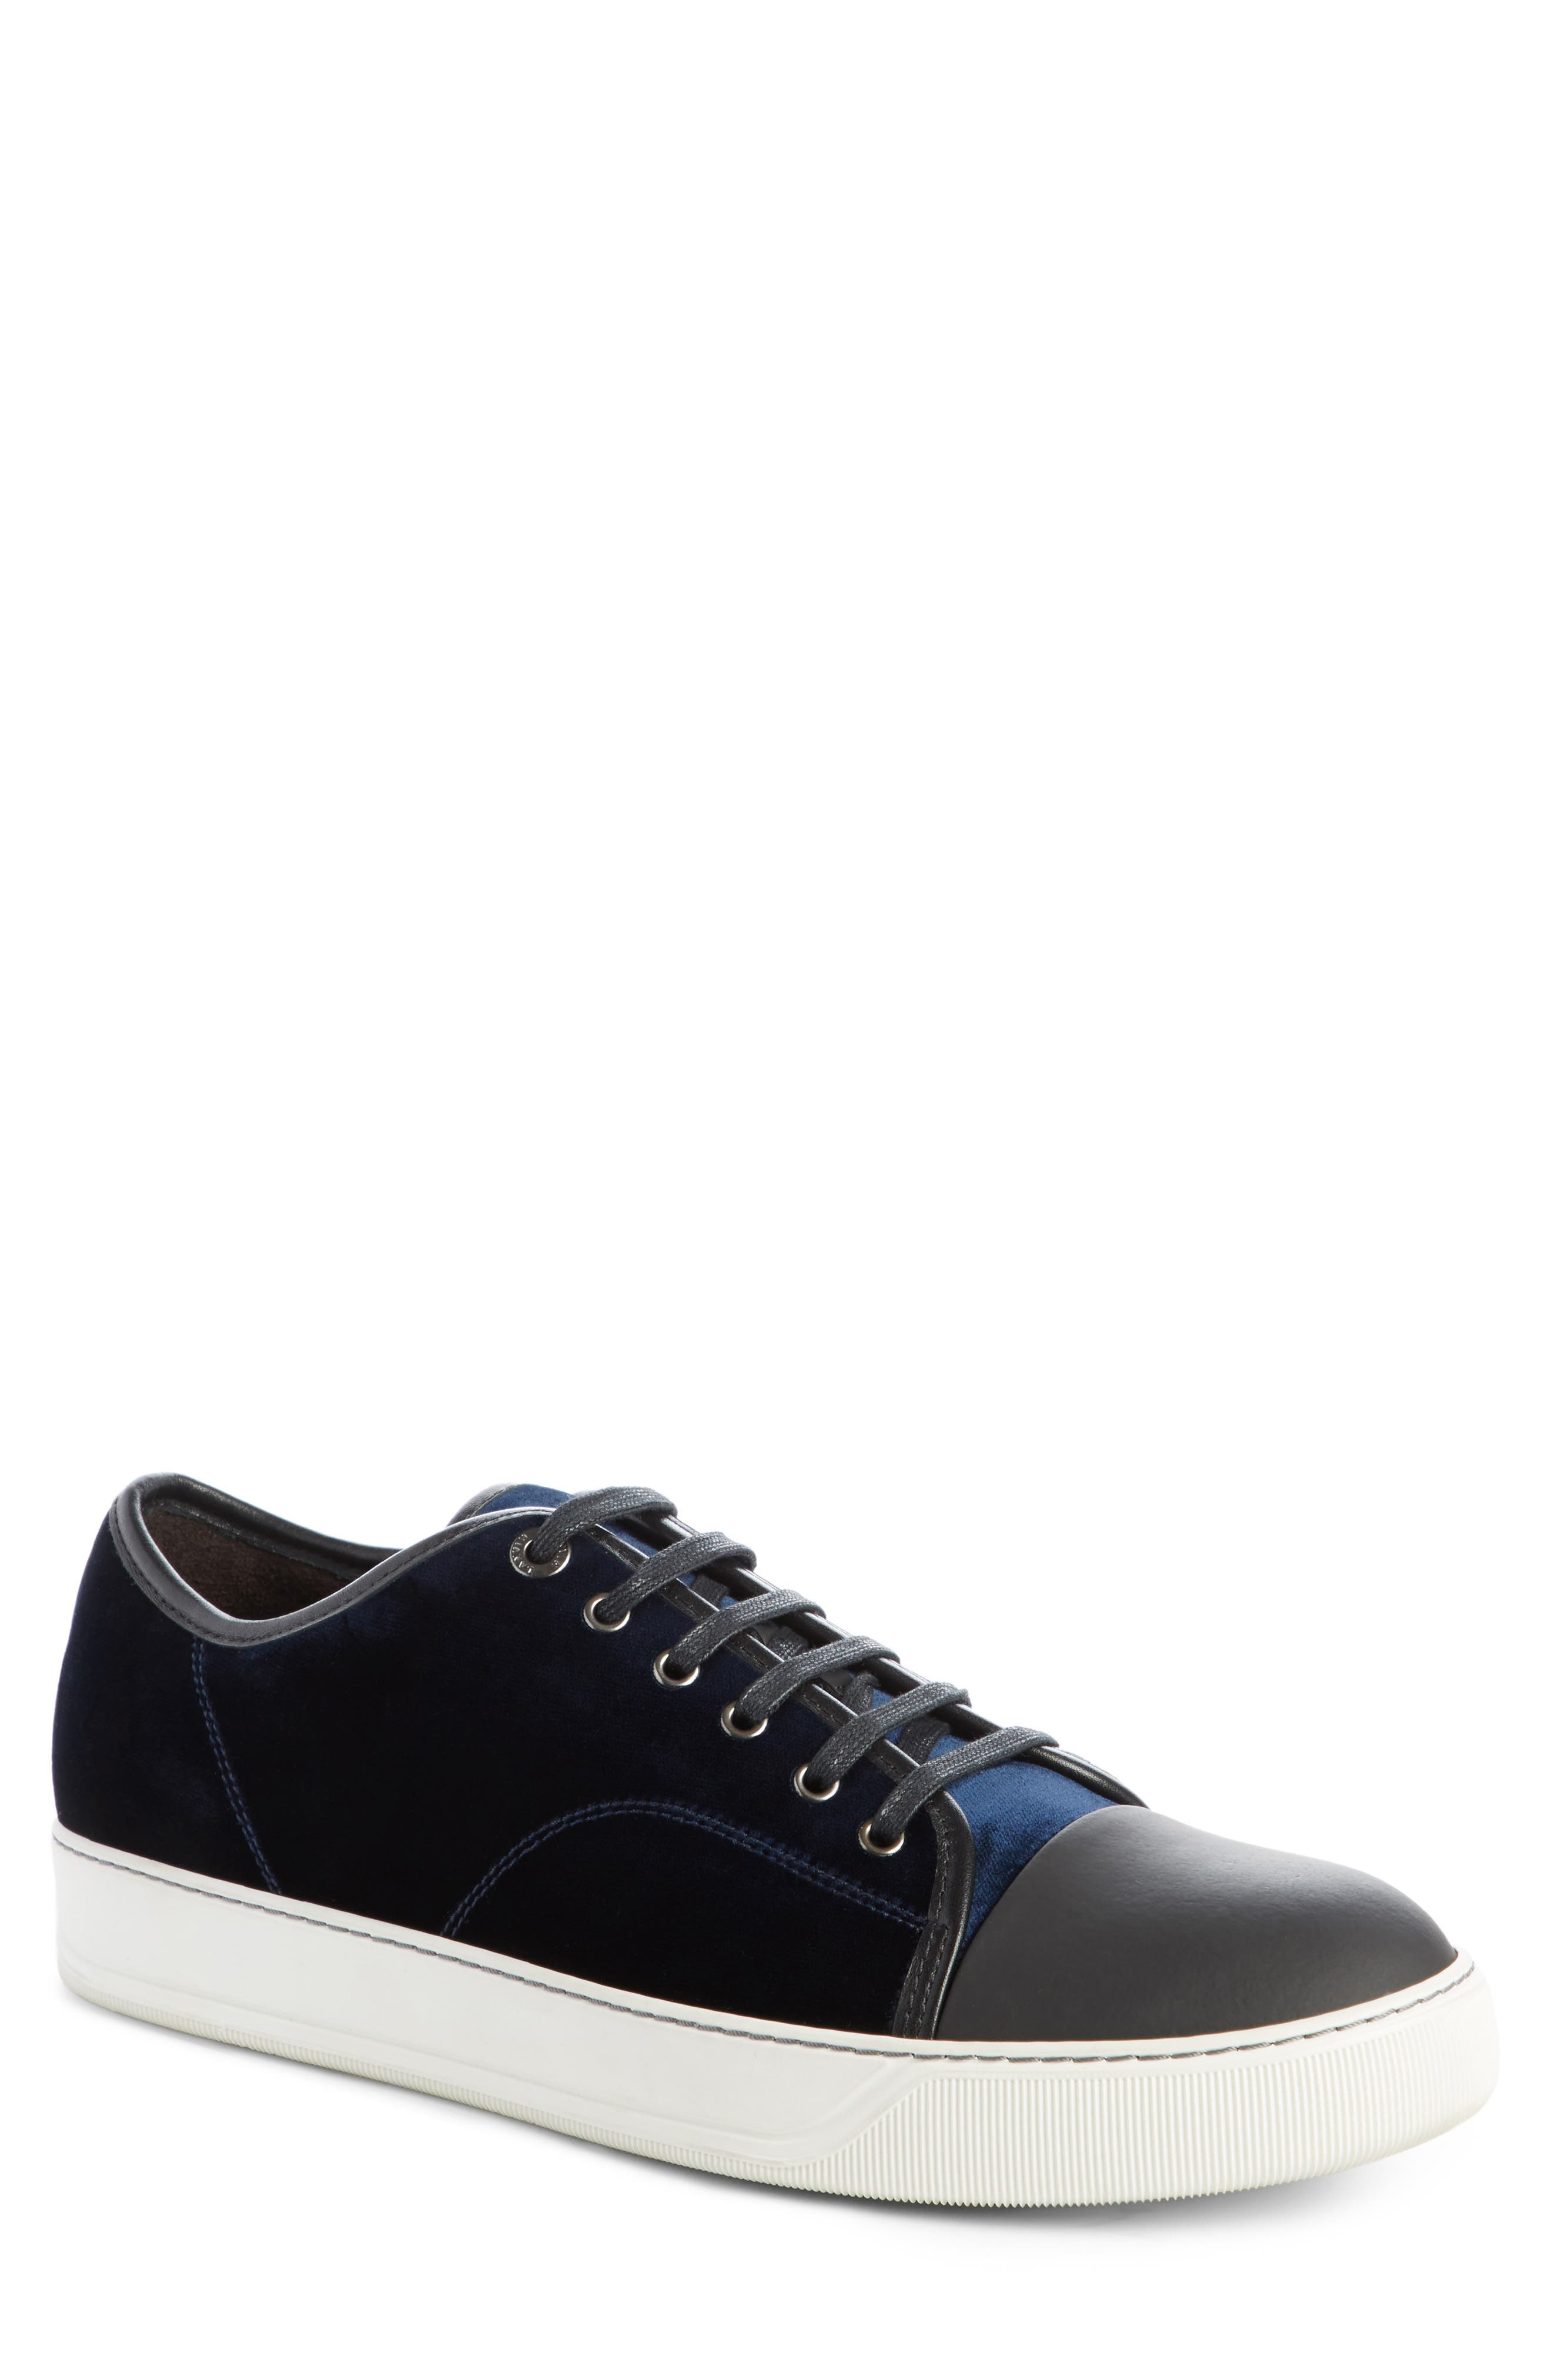 Alternate Image 1 Selected - Lanvin Low Top Sneaker (Men)